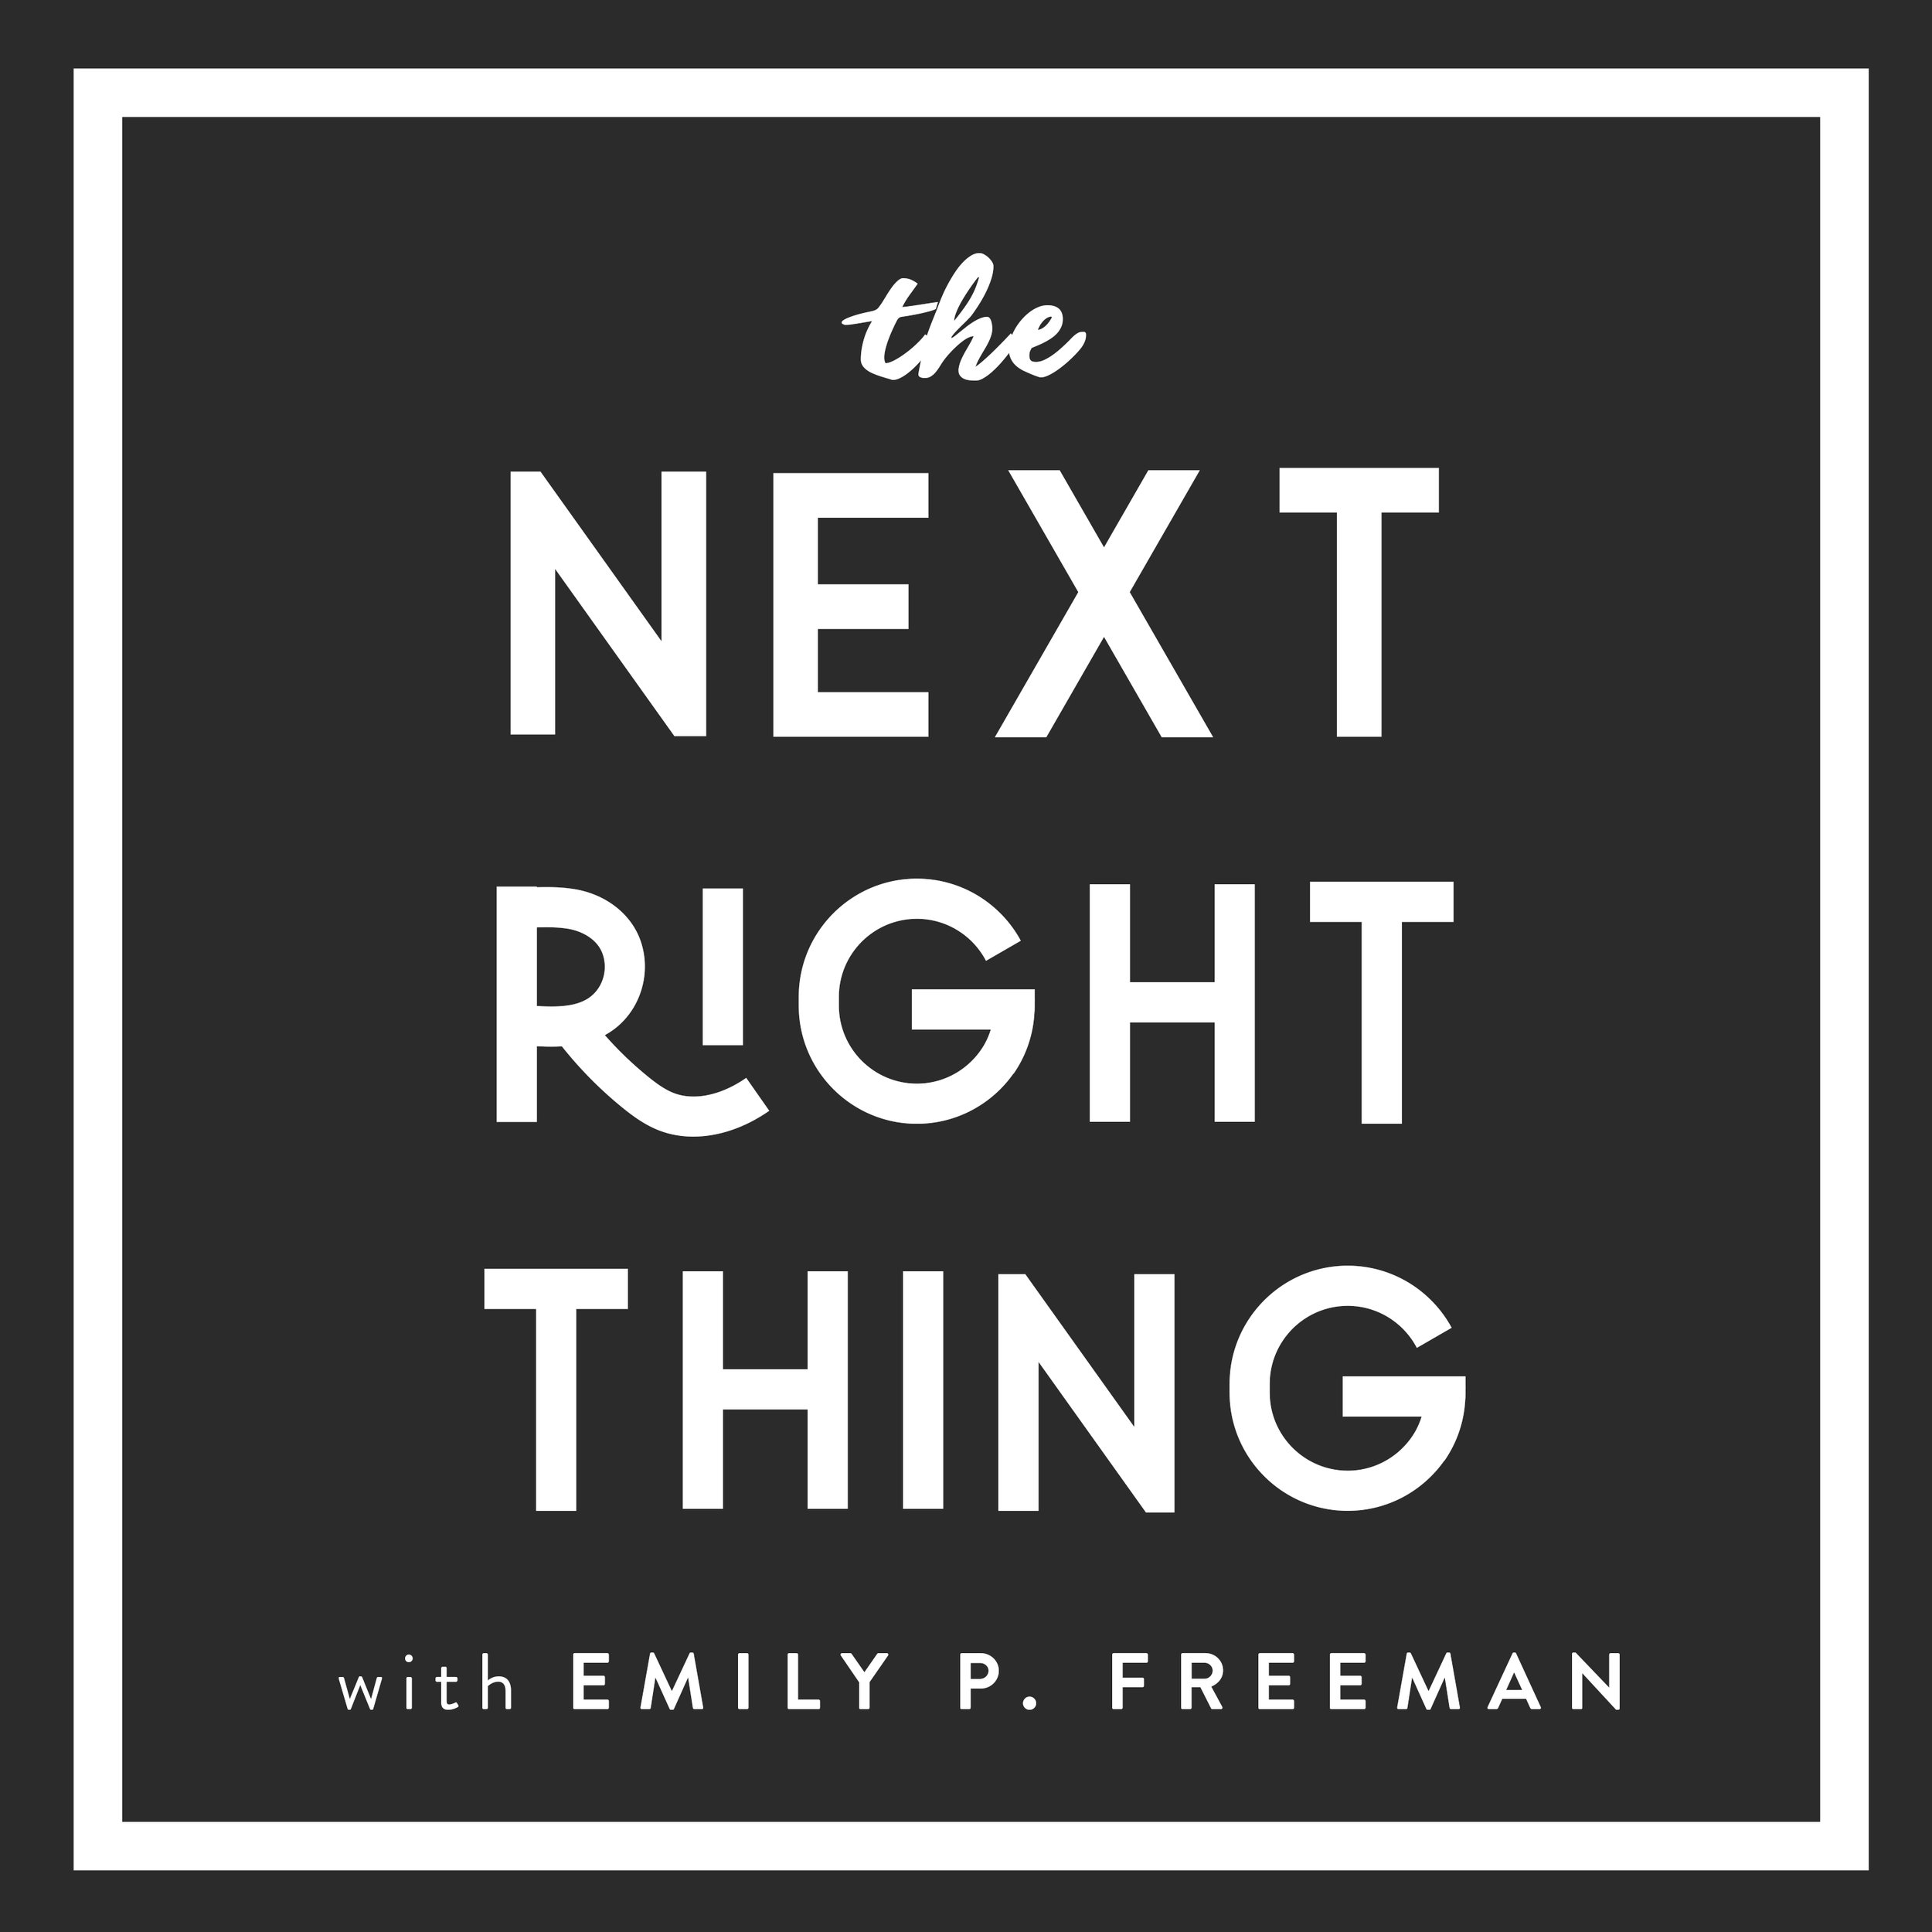 Project:  Cover Design for The Next Right Thing Podcast   Client:  Emily P. Freeman   itunes.apple.com/us/podcast/the-next-right-thing/